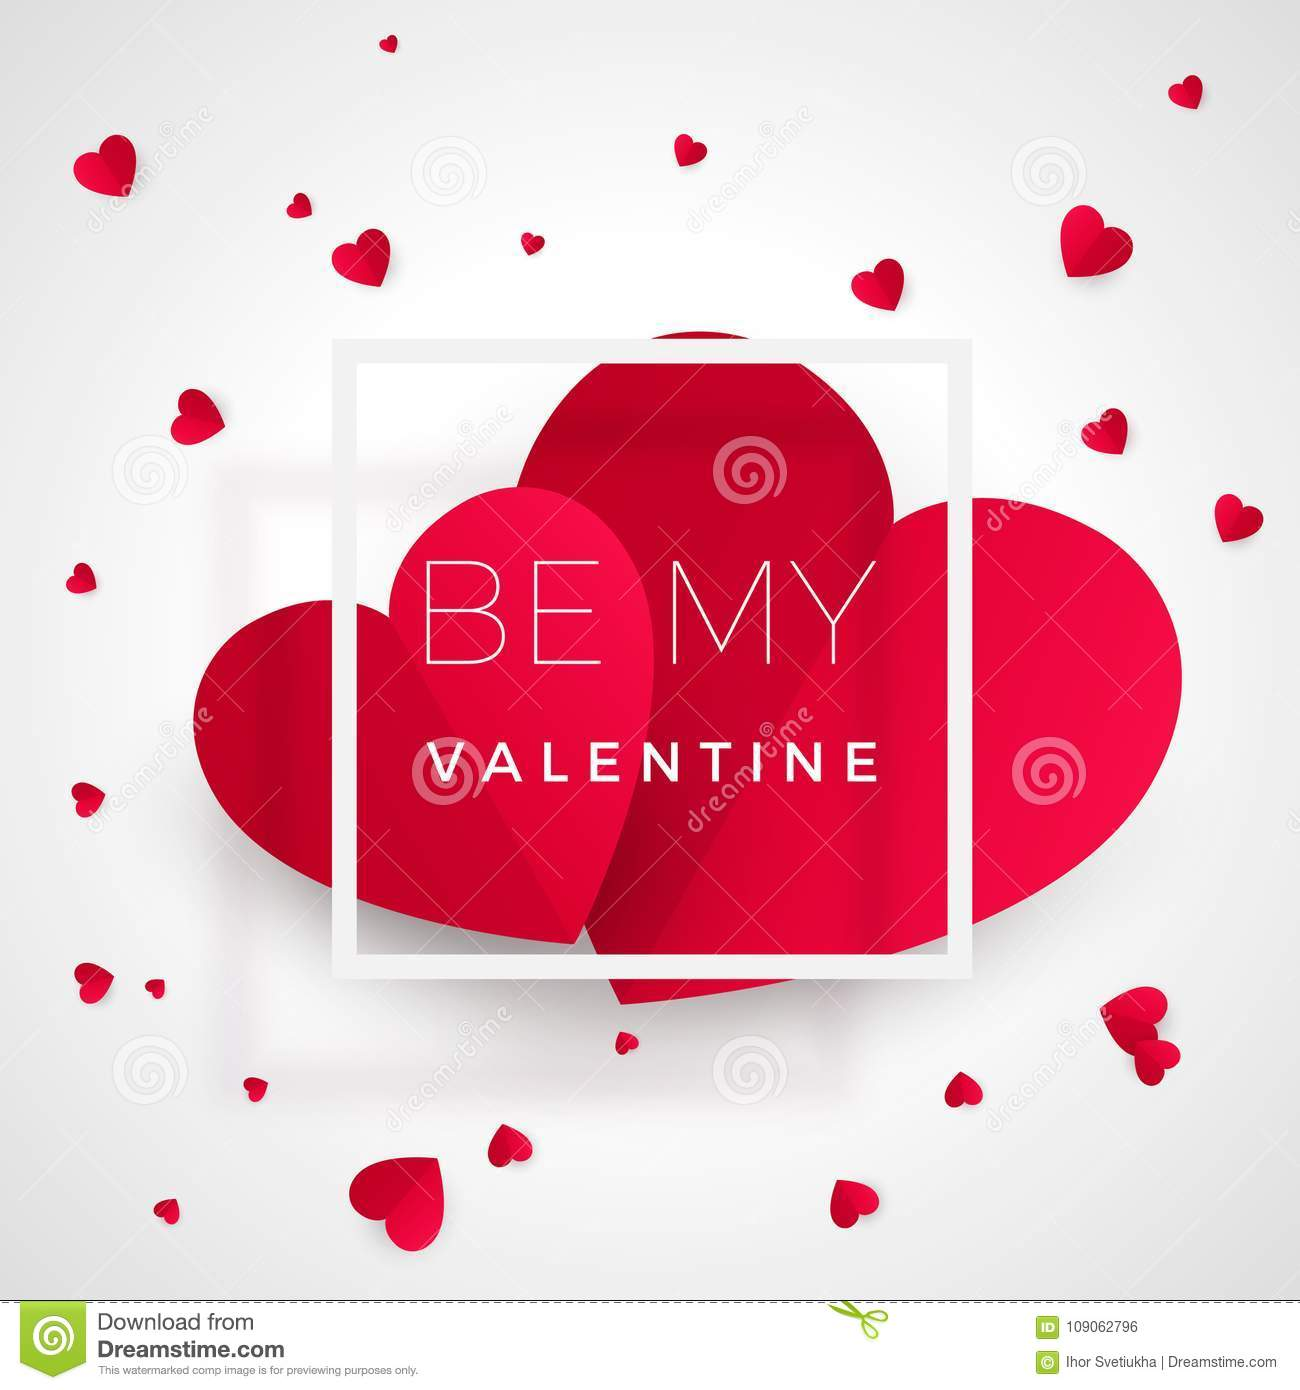 Be My Valentine Greeting Card Red Hearts With Text Heart